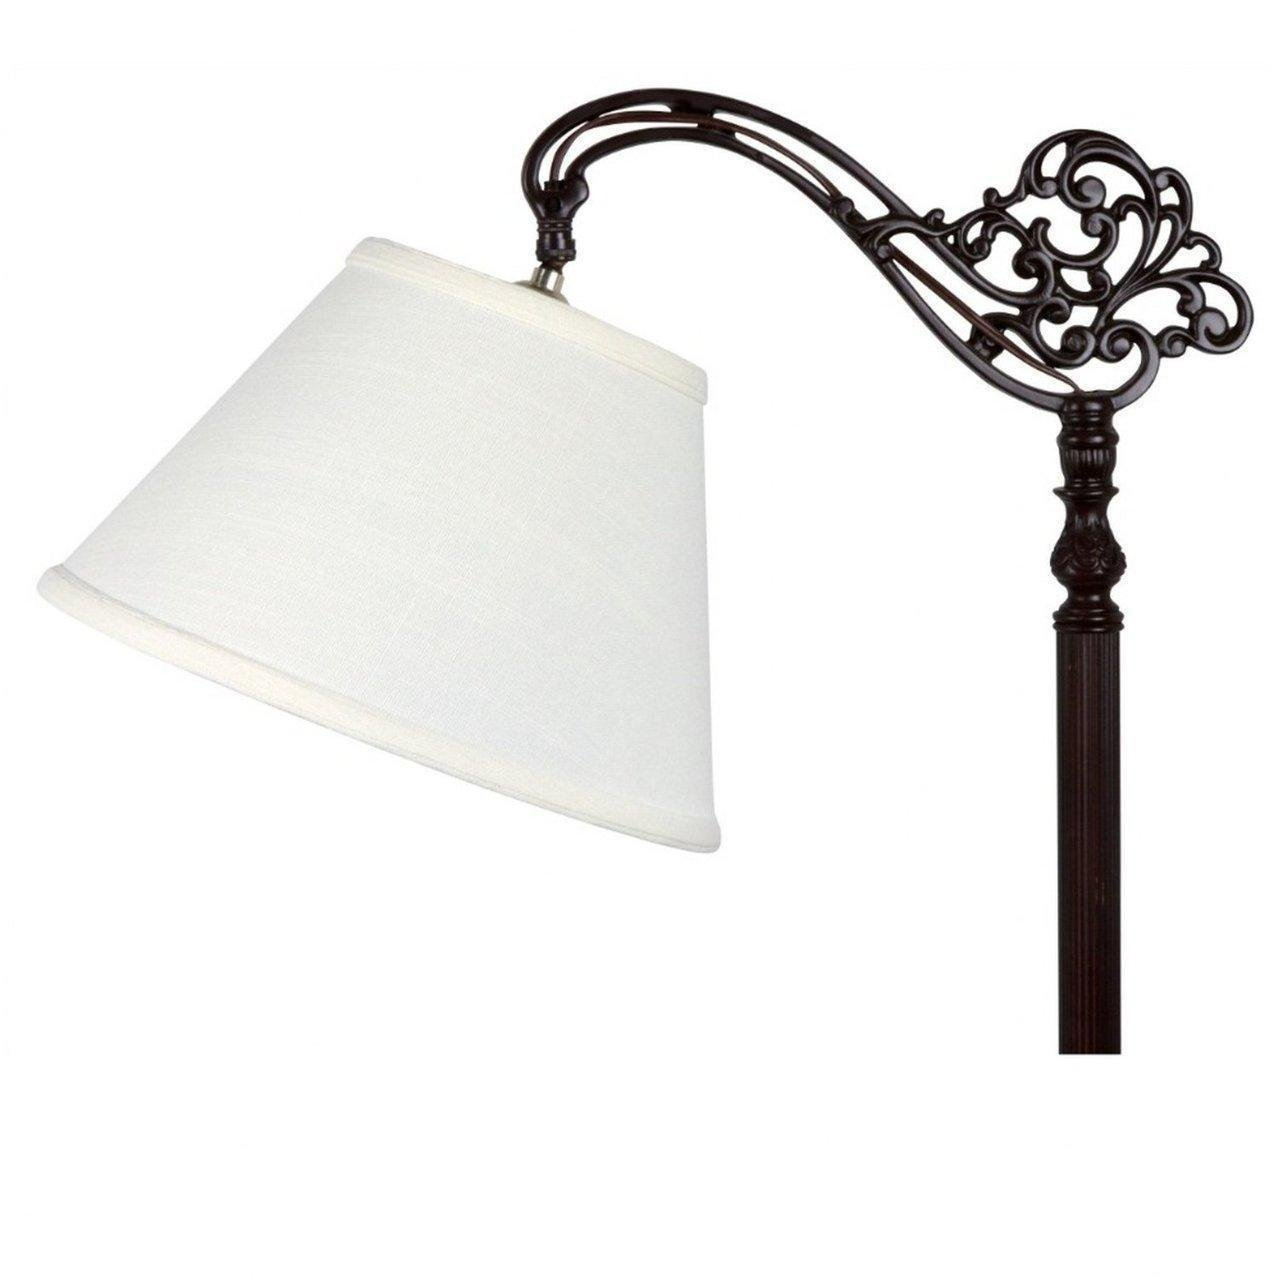 (USA Warehouse) UpgradeLights White Linen 8 Inch European Drum Lampshade with Uno Fitter -/PT# HF983-1754371394